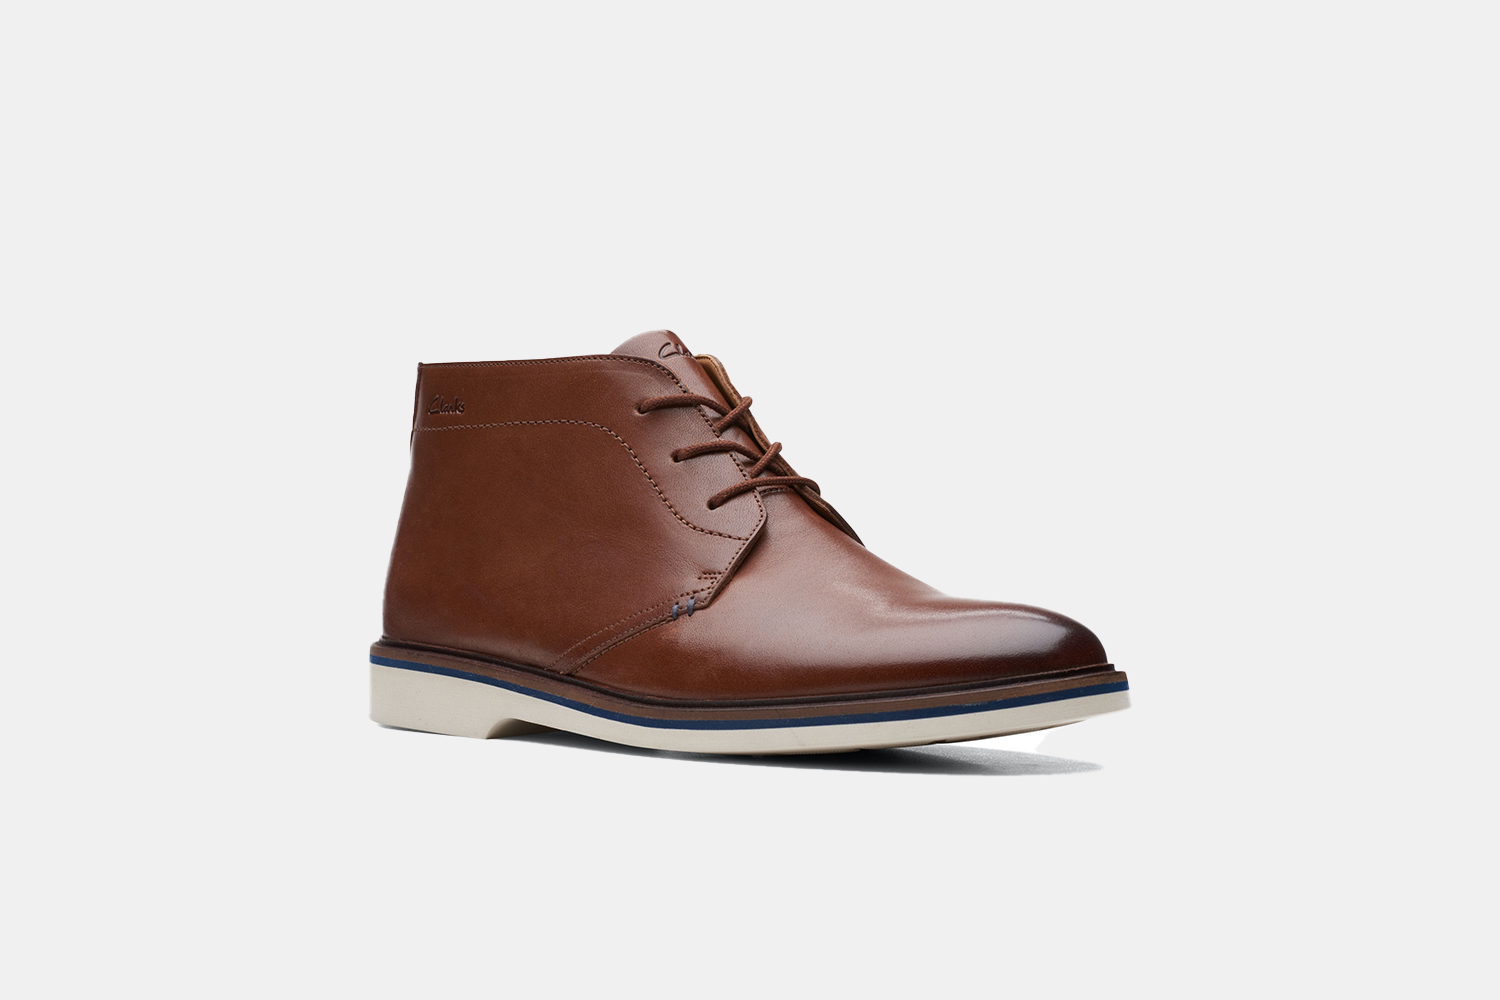 a brown leather boot